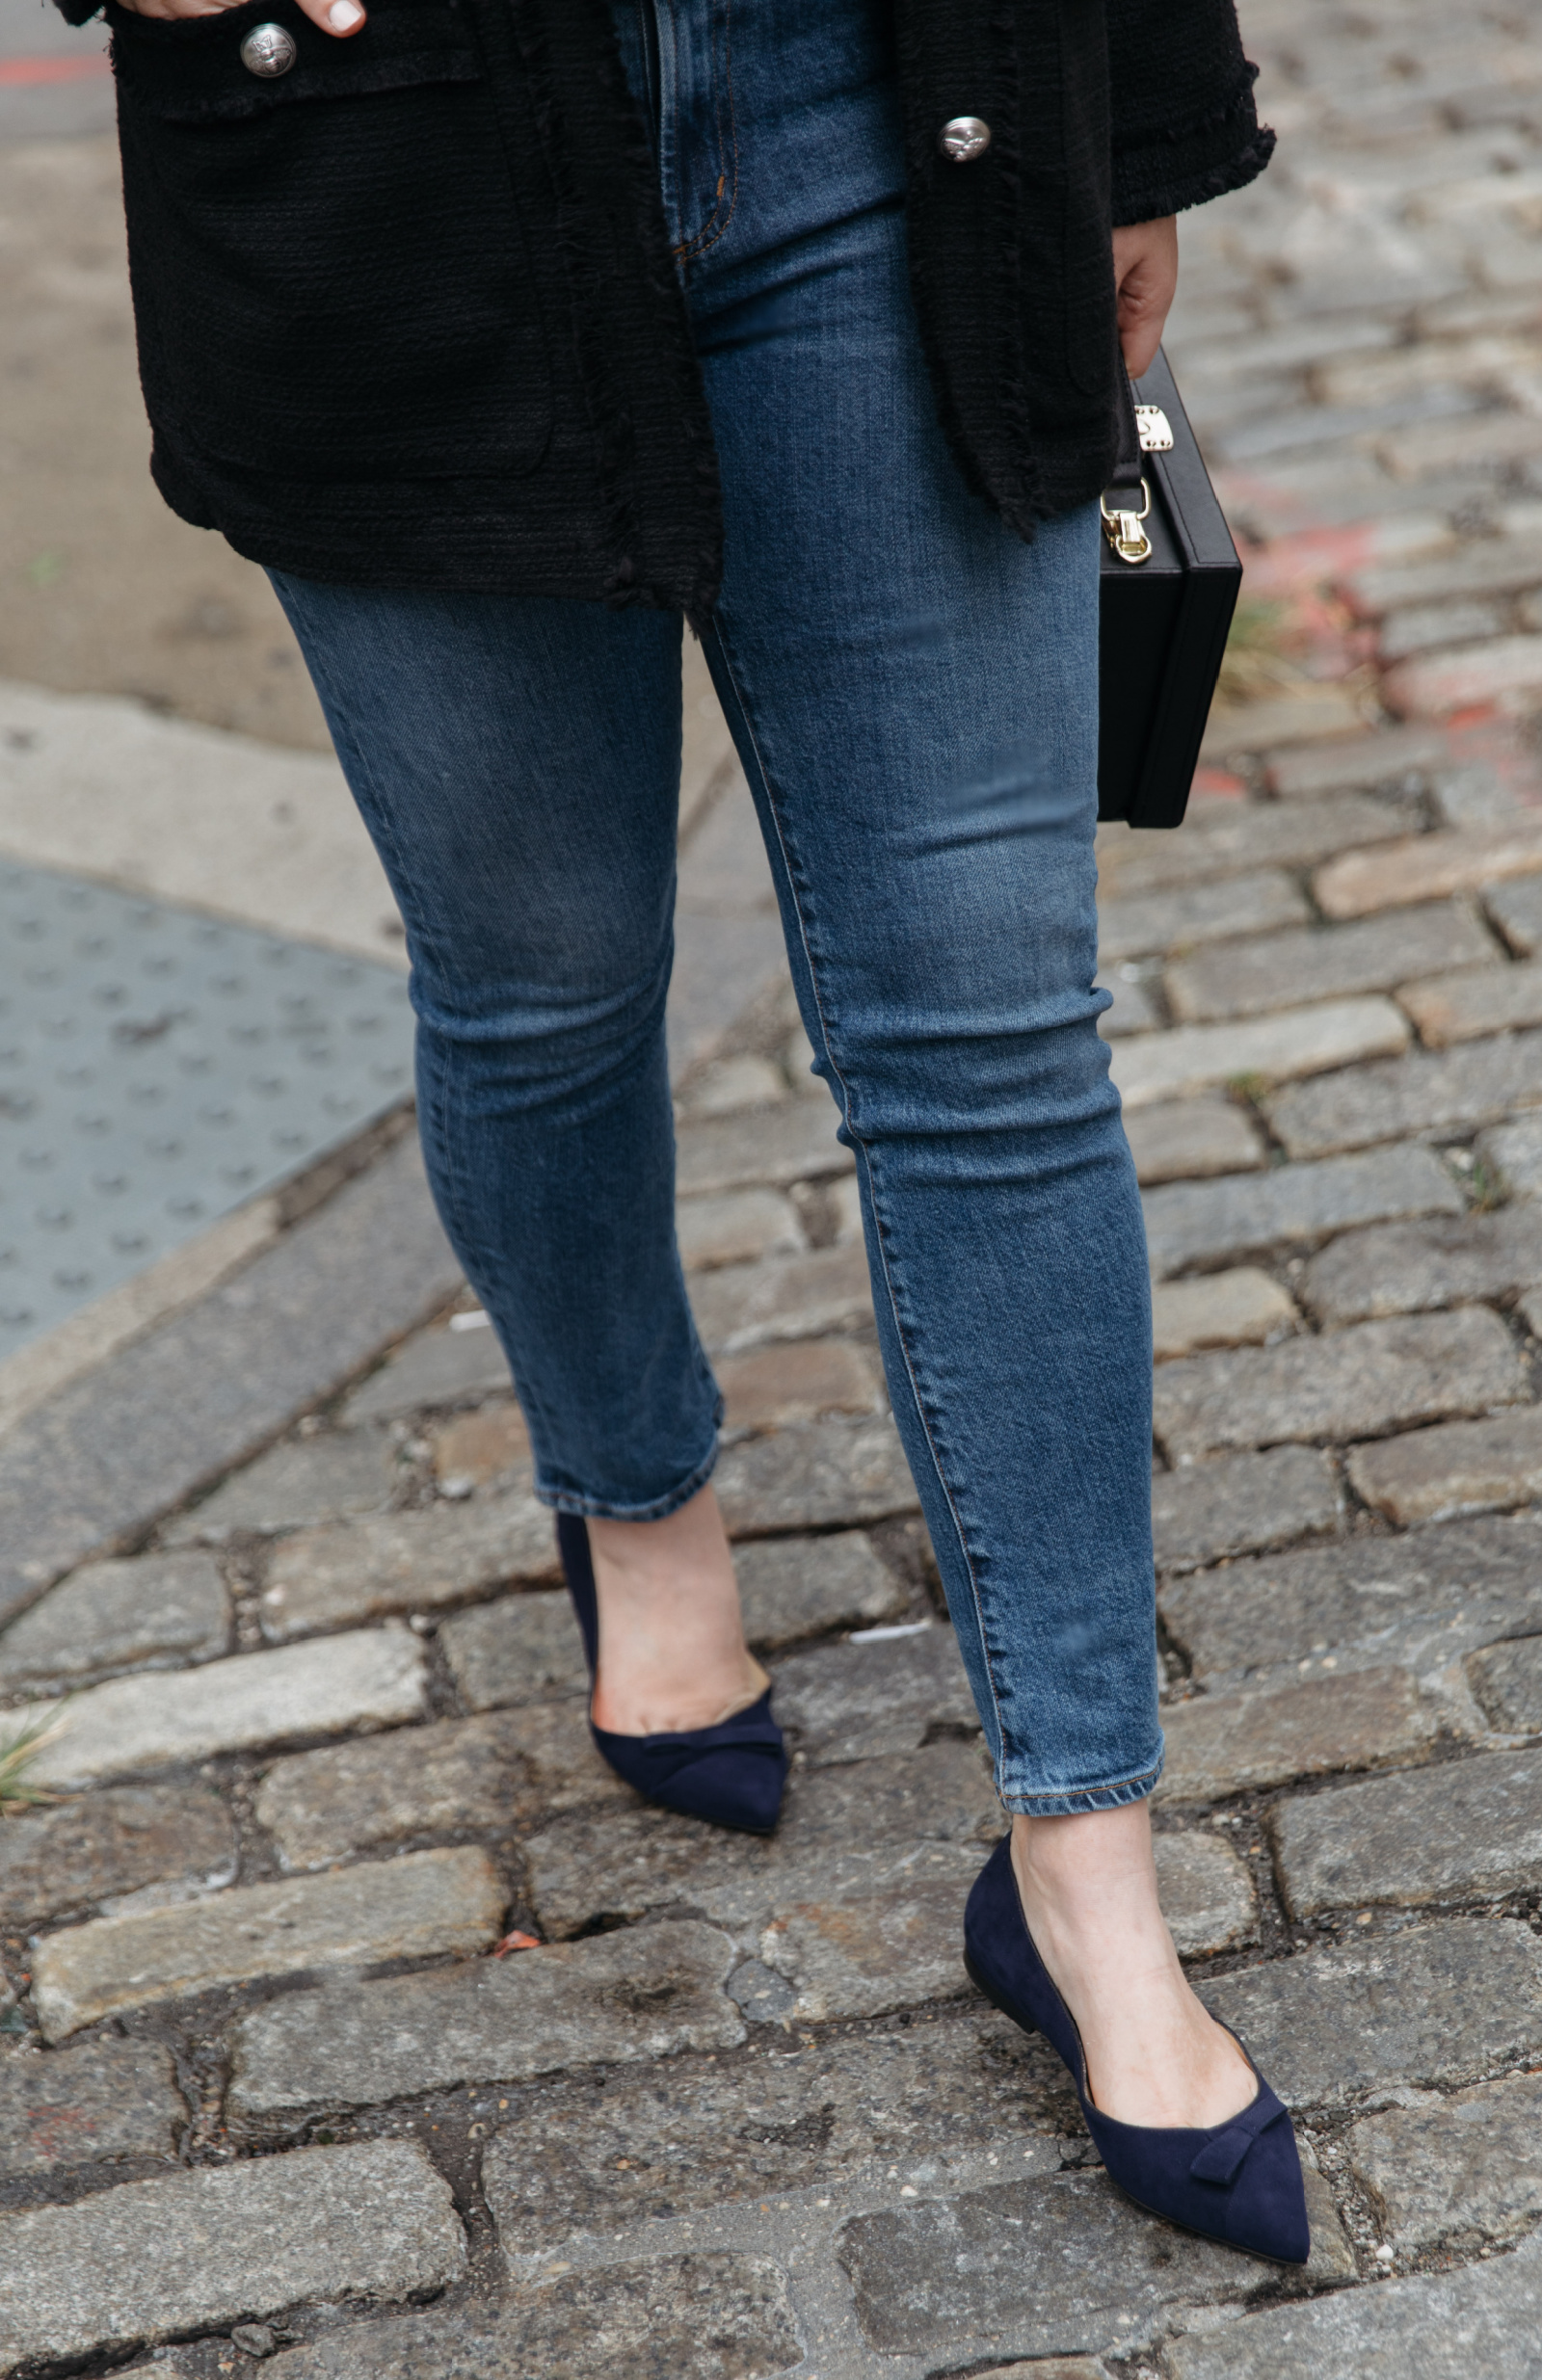 The Perfect Flat Shoes